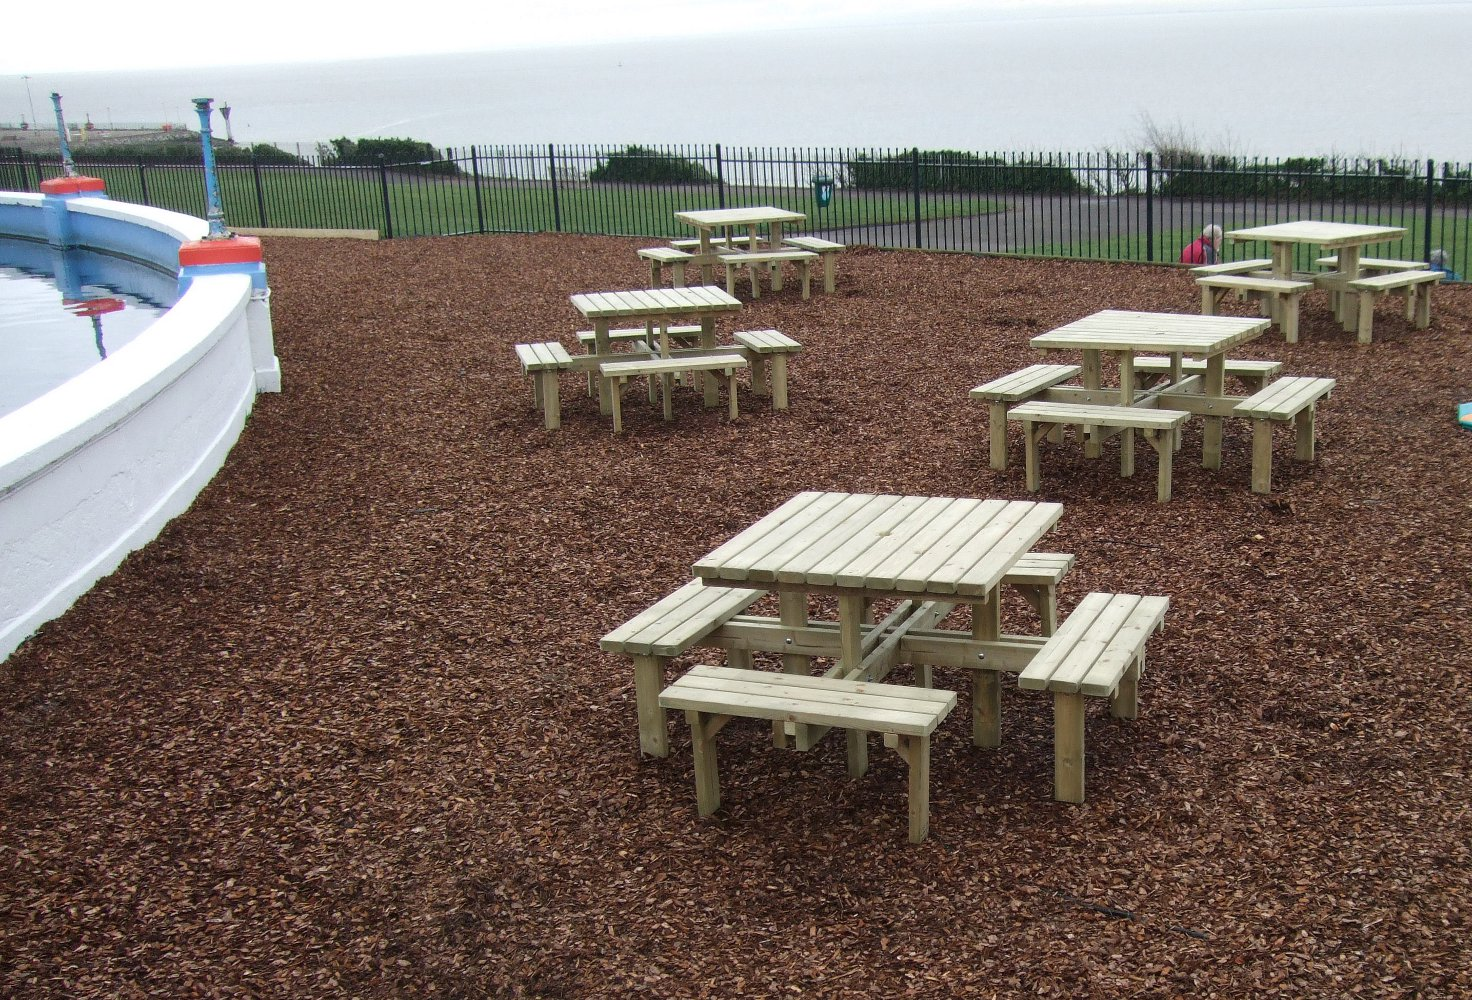 Picnic Tables for Pubs and Cafes | 8 Seat Square tables